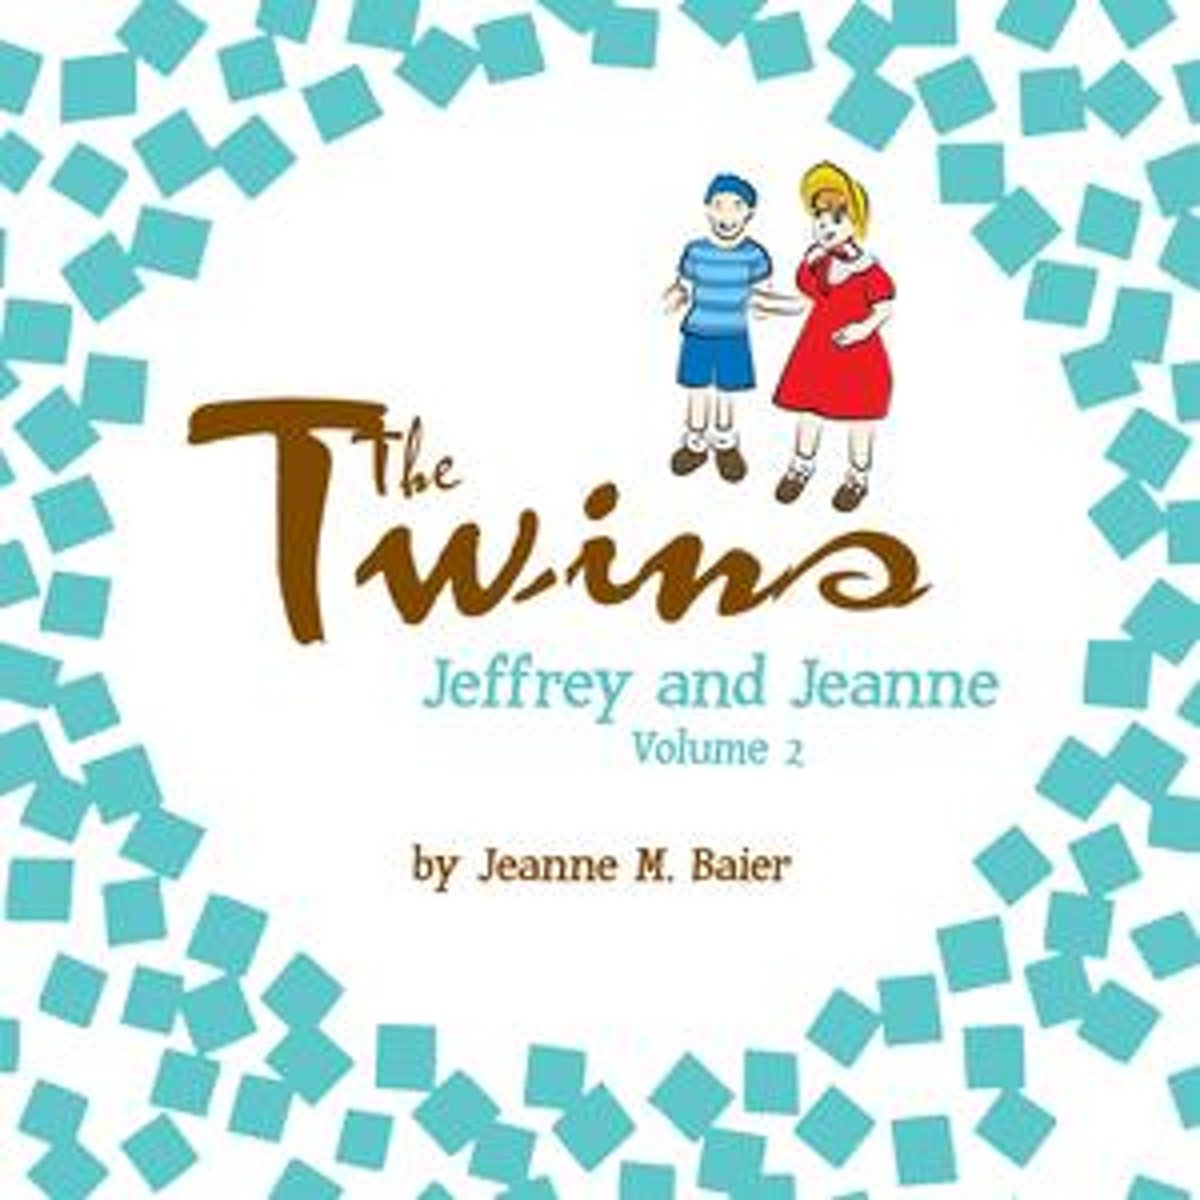 The Twins Jeffrey and Jeanne Volume 2